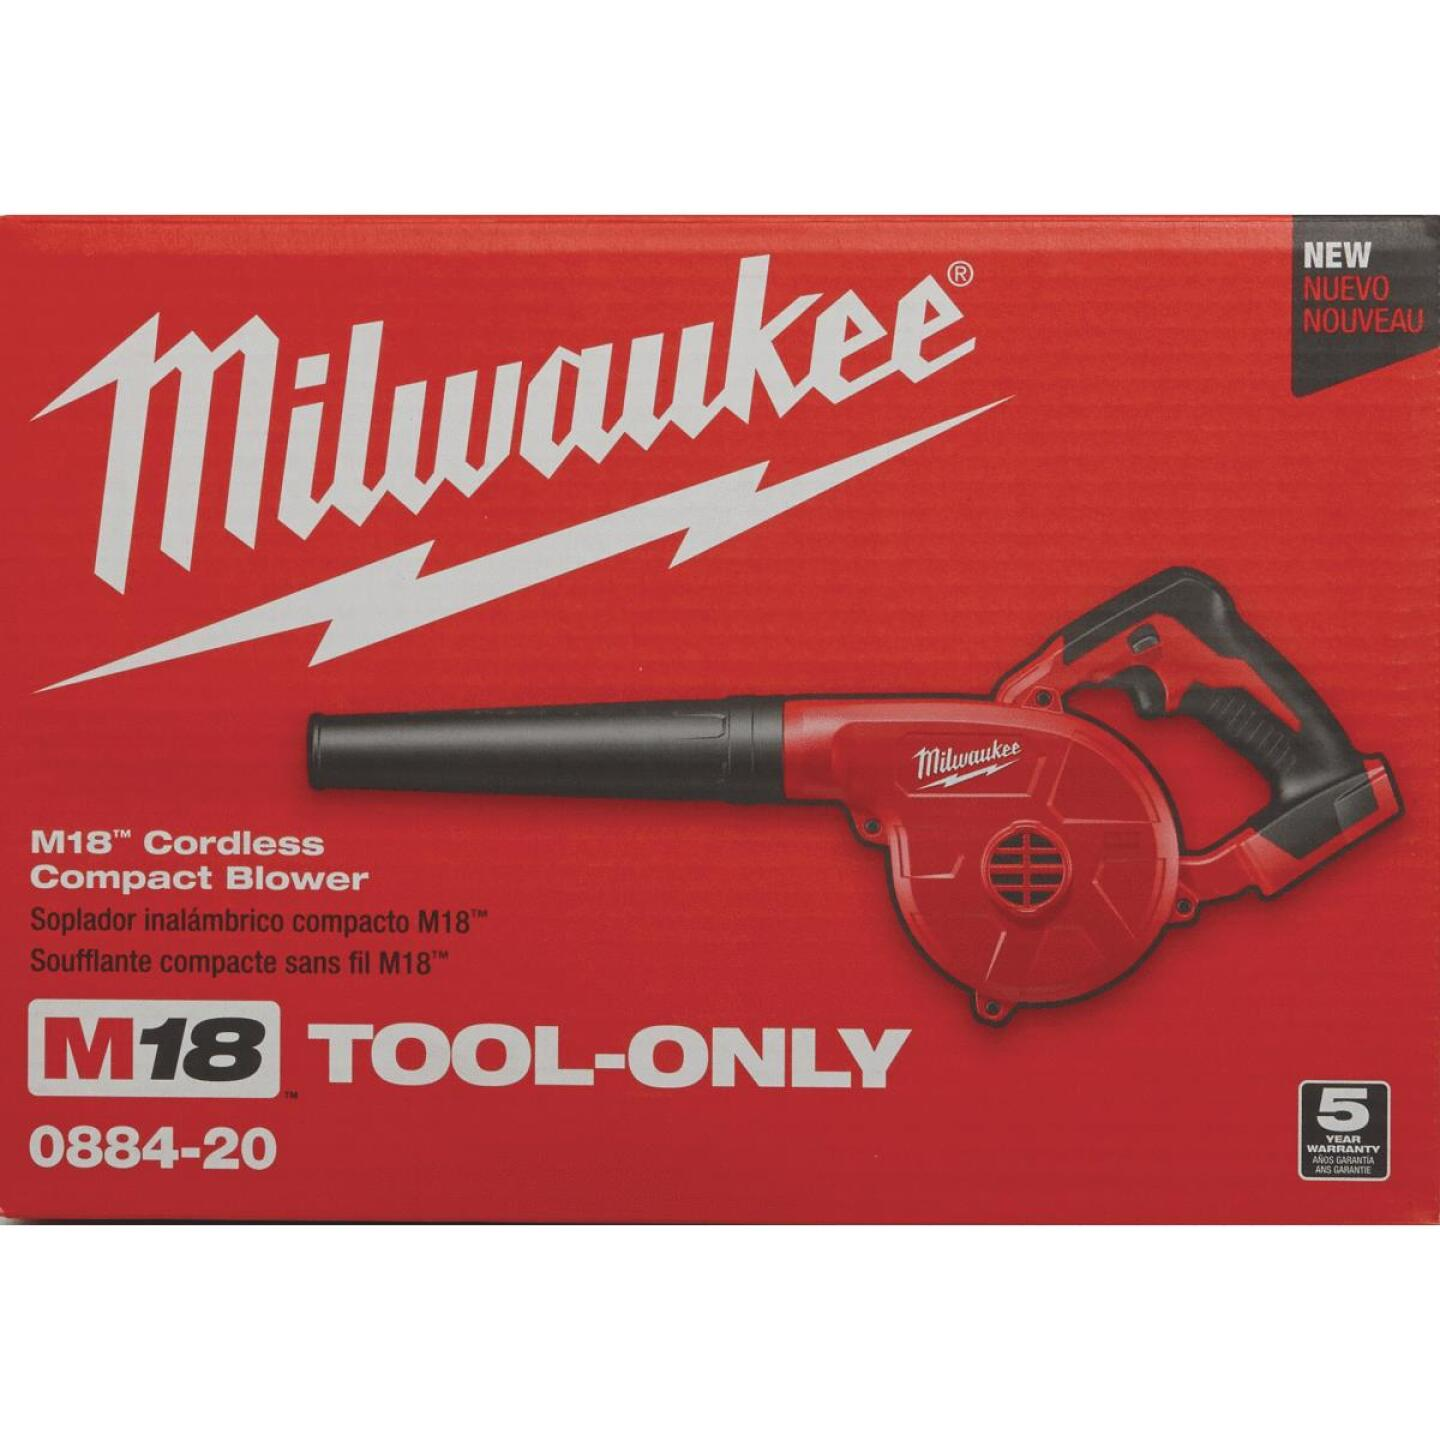 Milwaukee M18 160 MPH 18-Volt Compact Lithium-Ion Cordless Blower (Bare Tool) Image 7